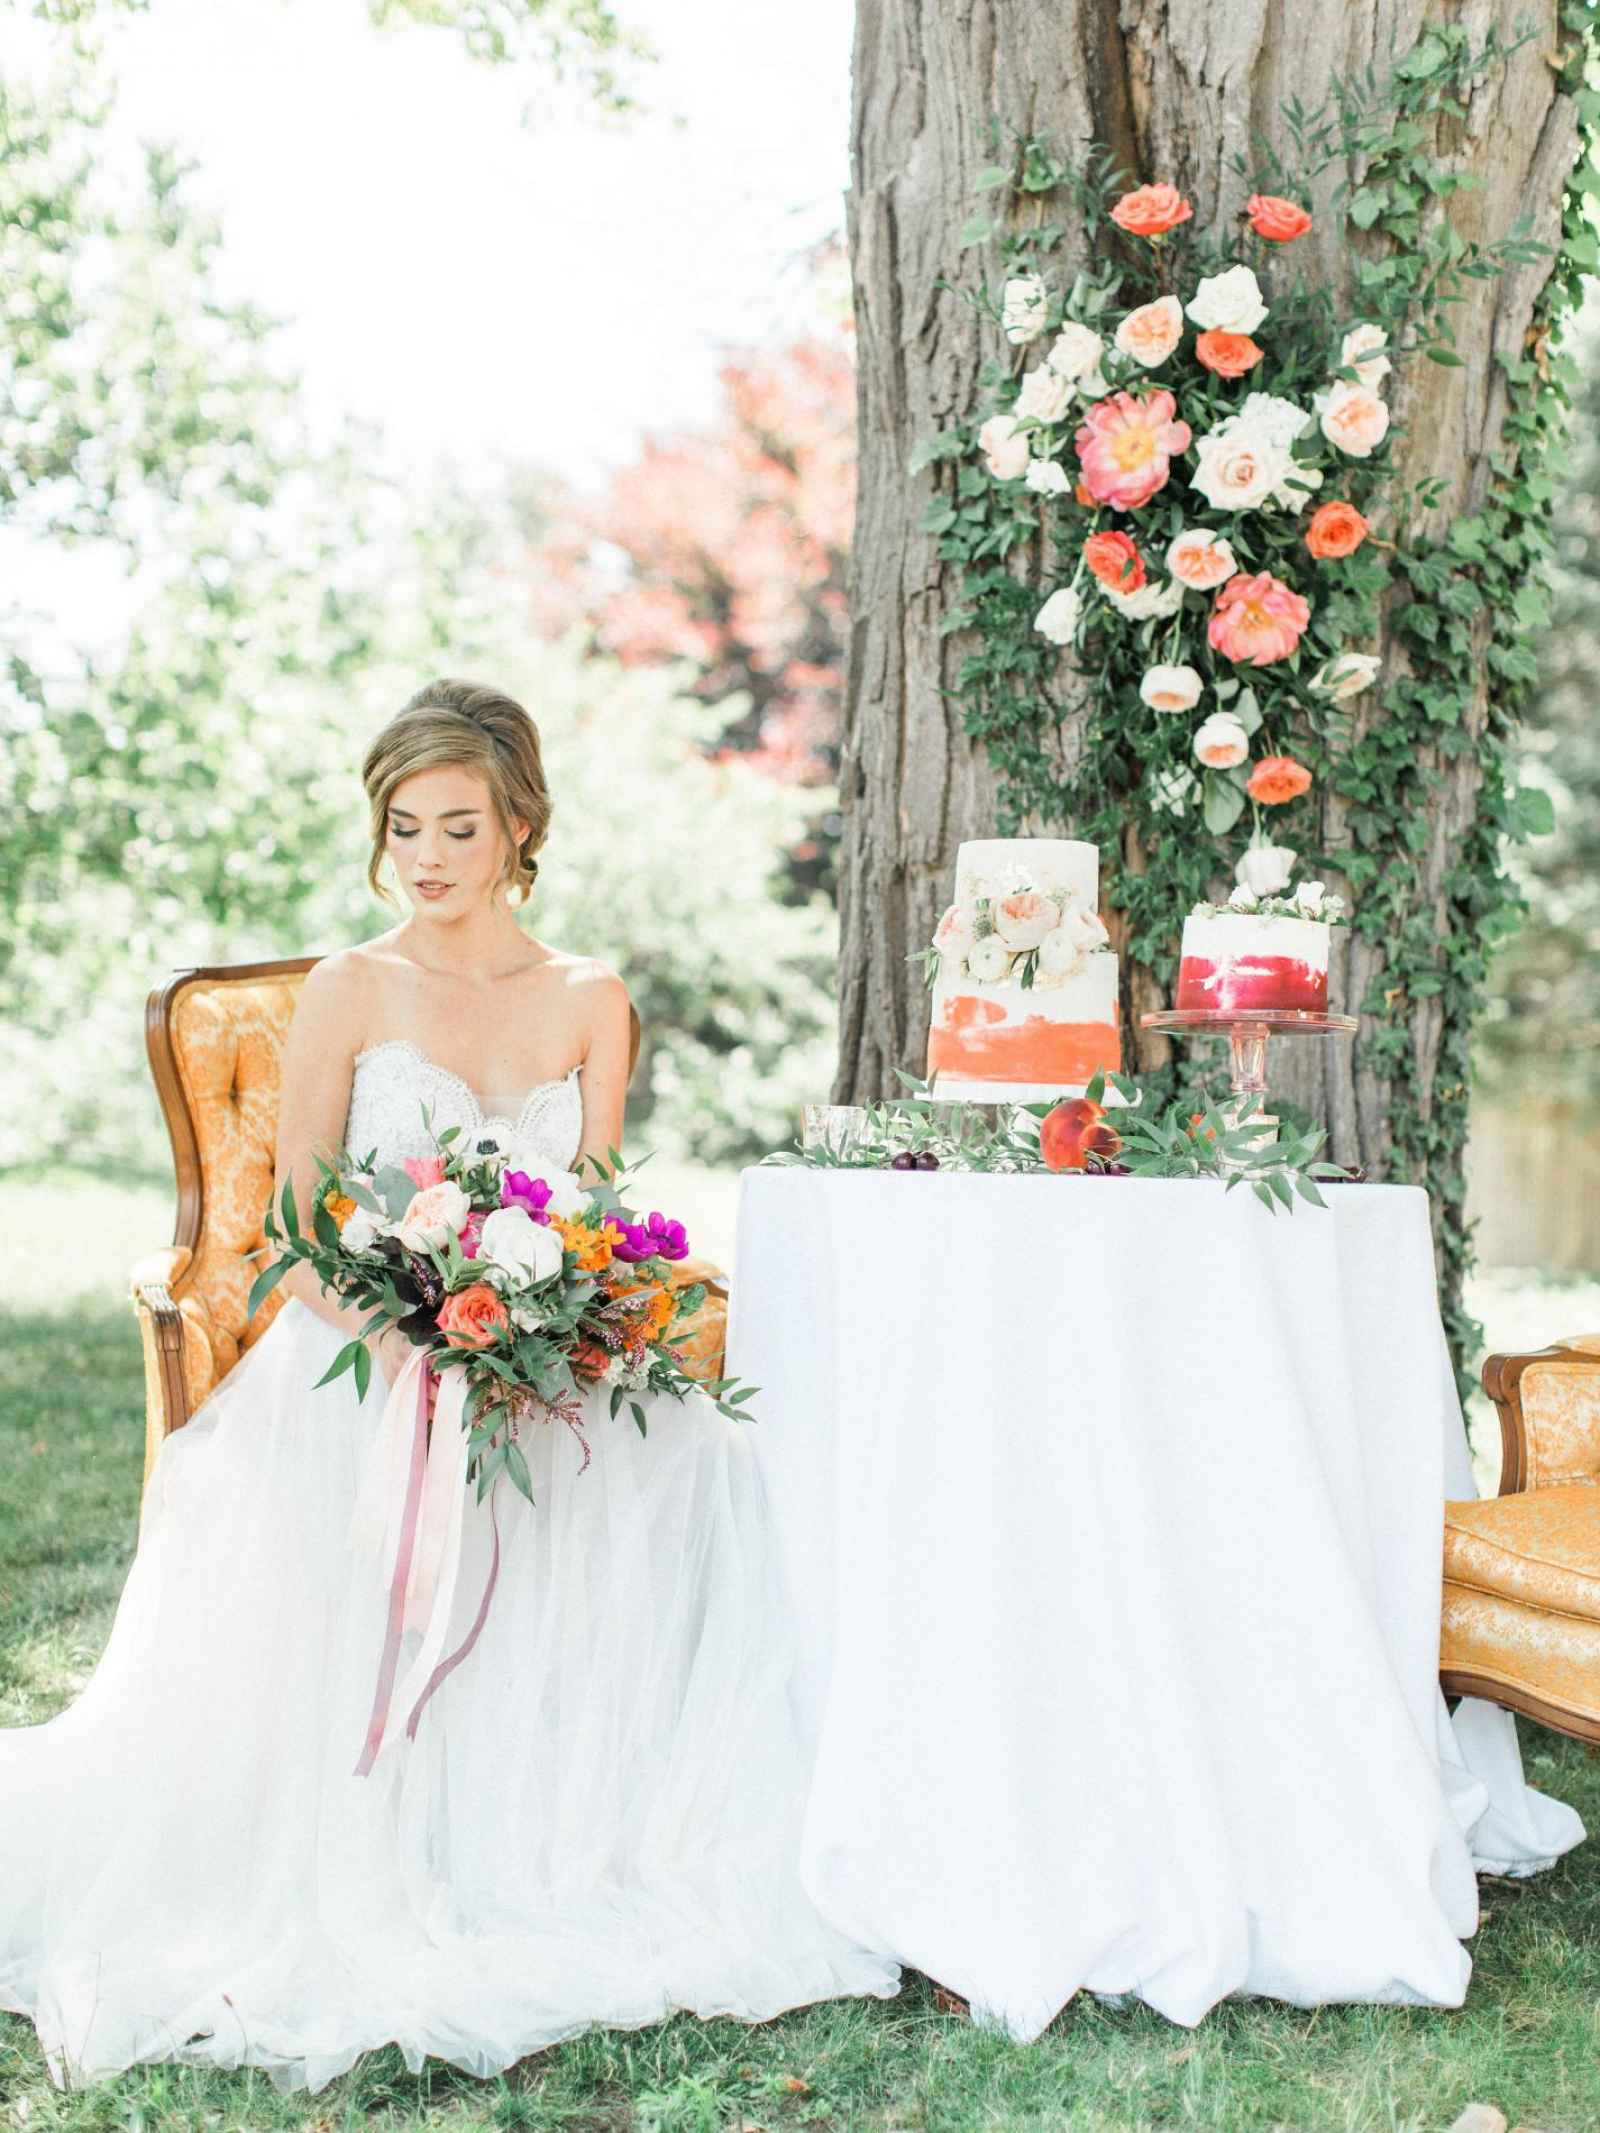 Summer Splendor: A Whimsical Garden Wedding at Henderson Castle ...